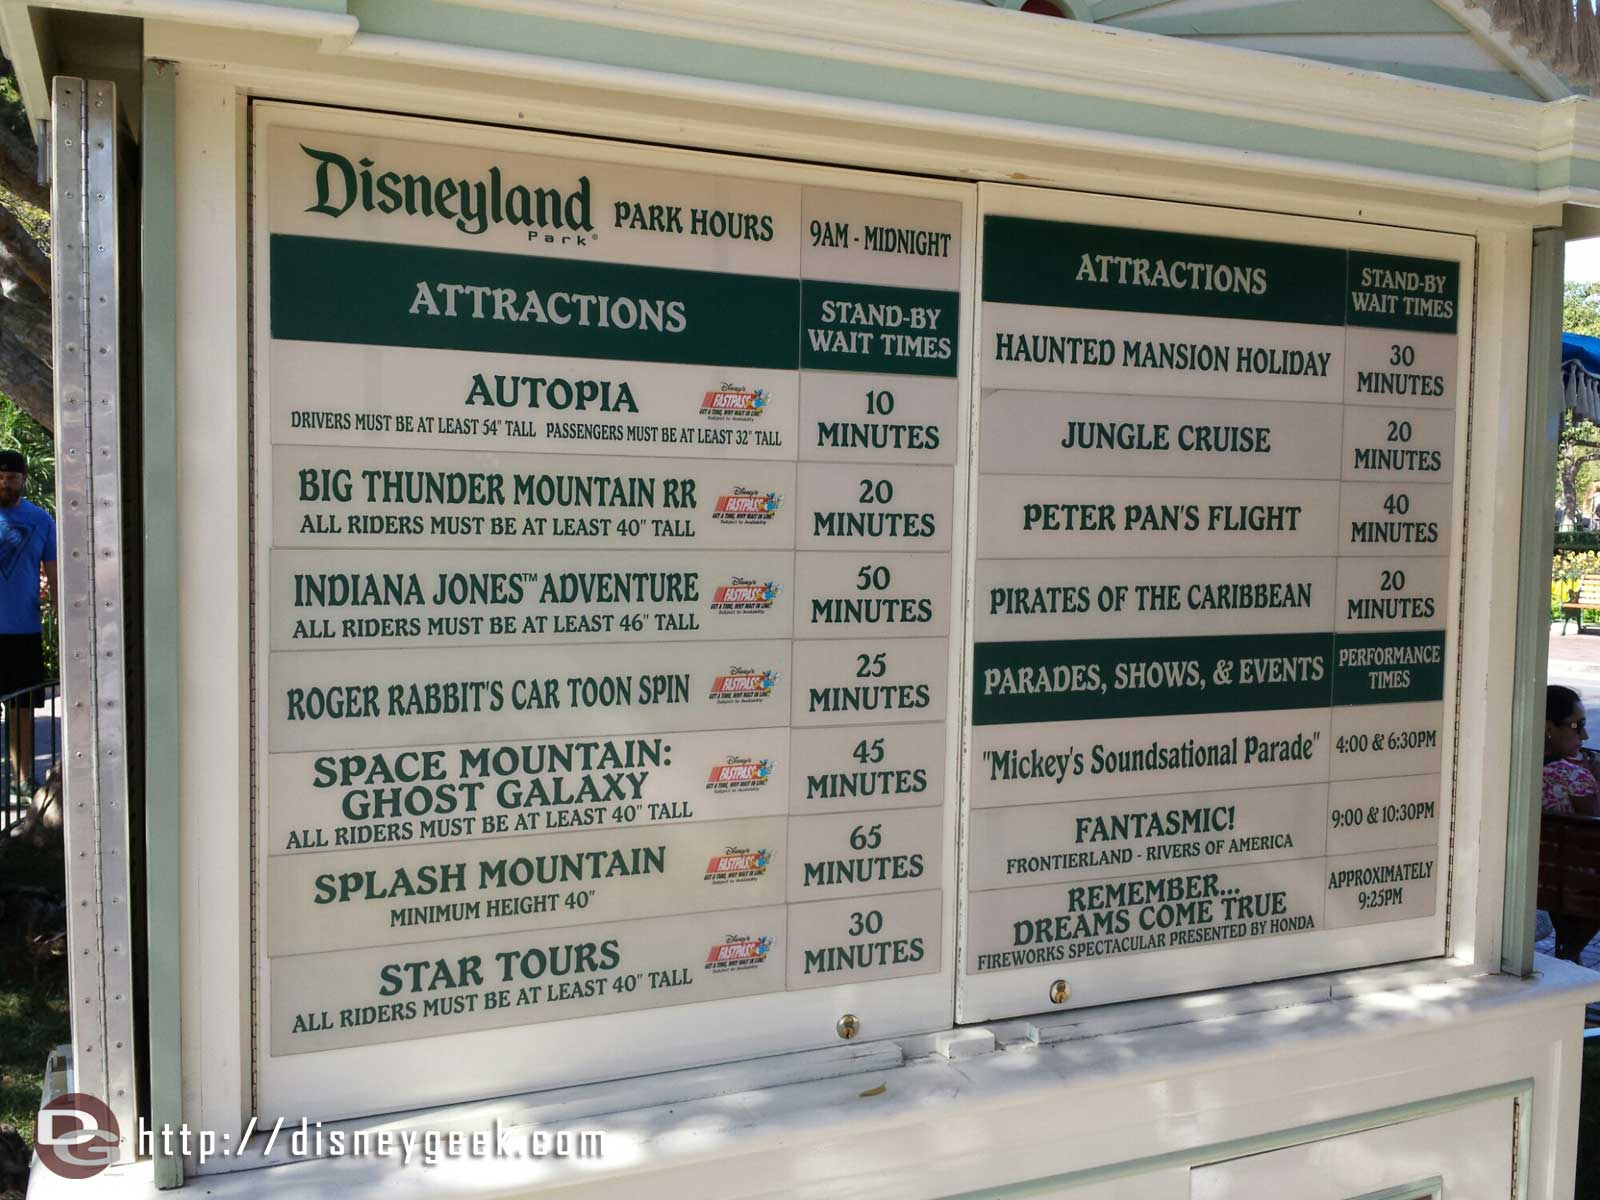 #Disneyland waits as of 3:03pm